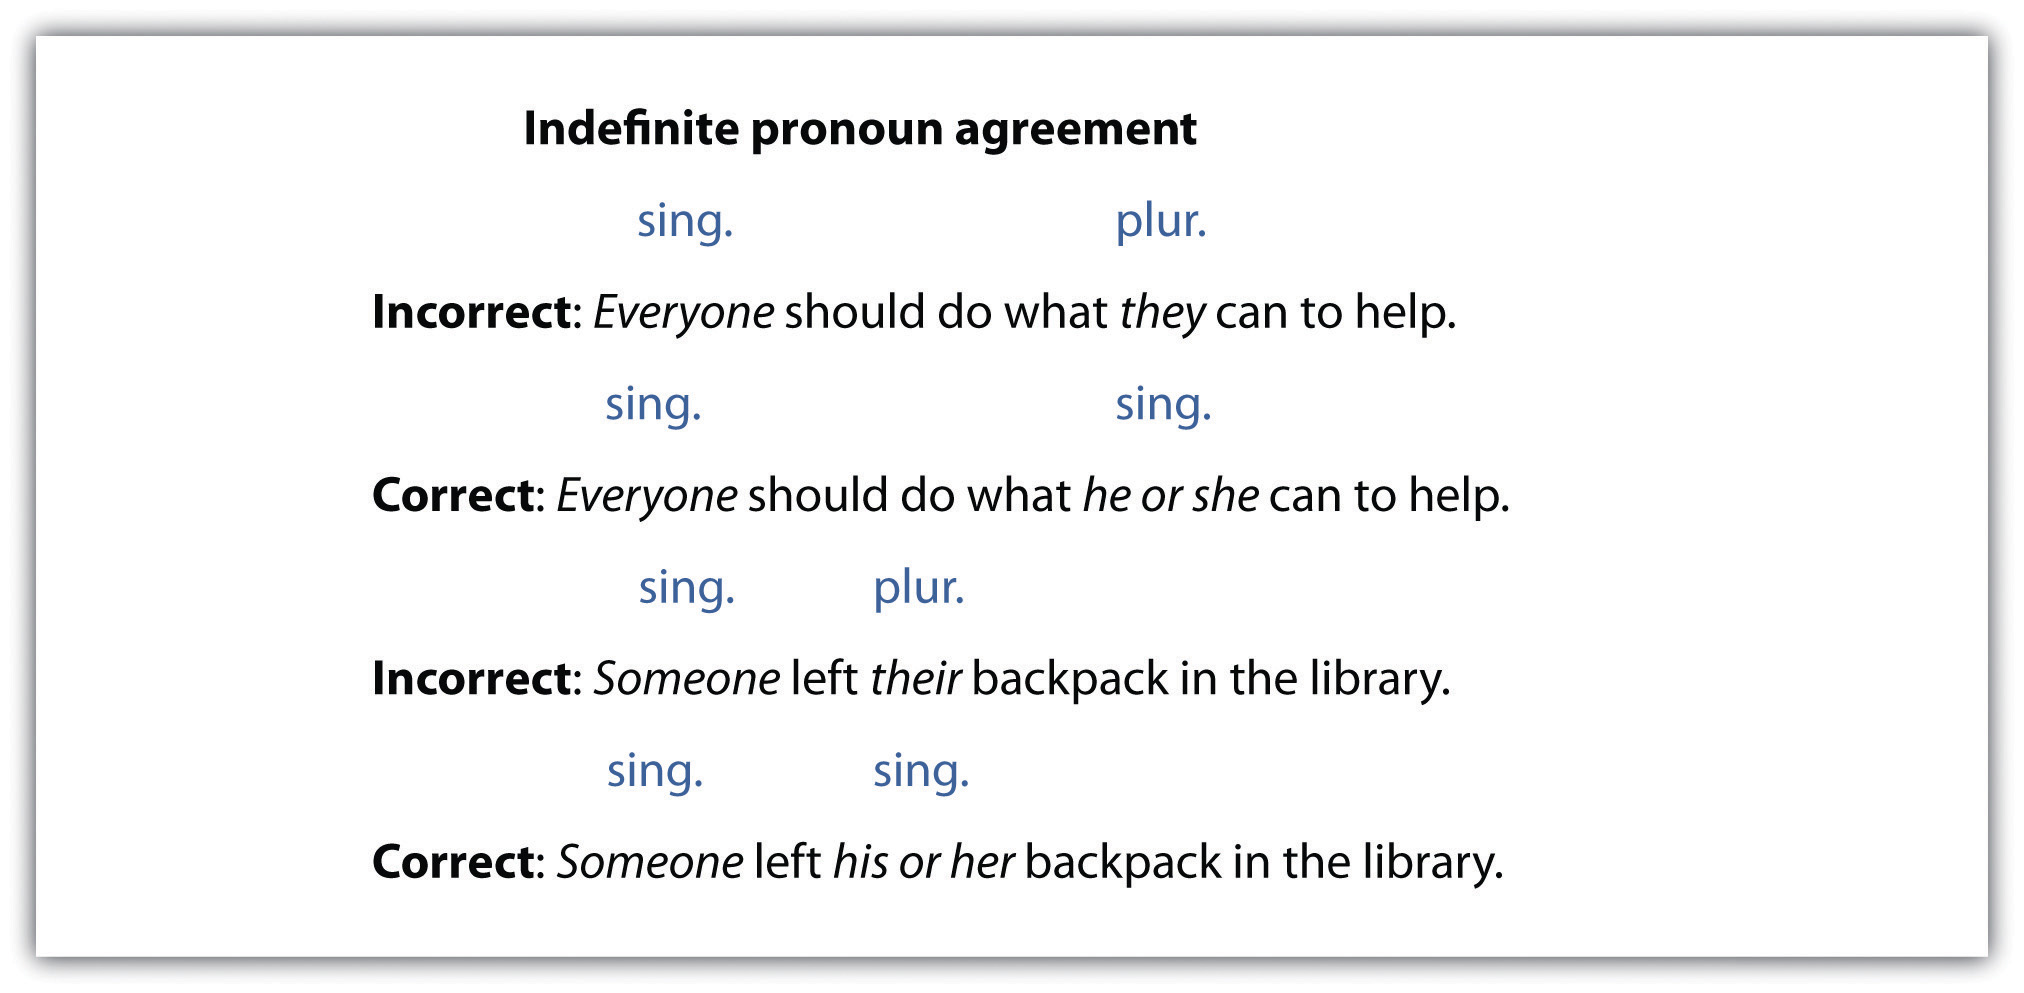 Worksheet Is Each A Pronoun pronouns indefinite and agreement